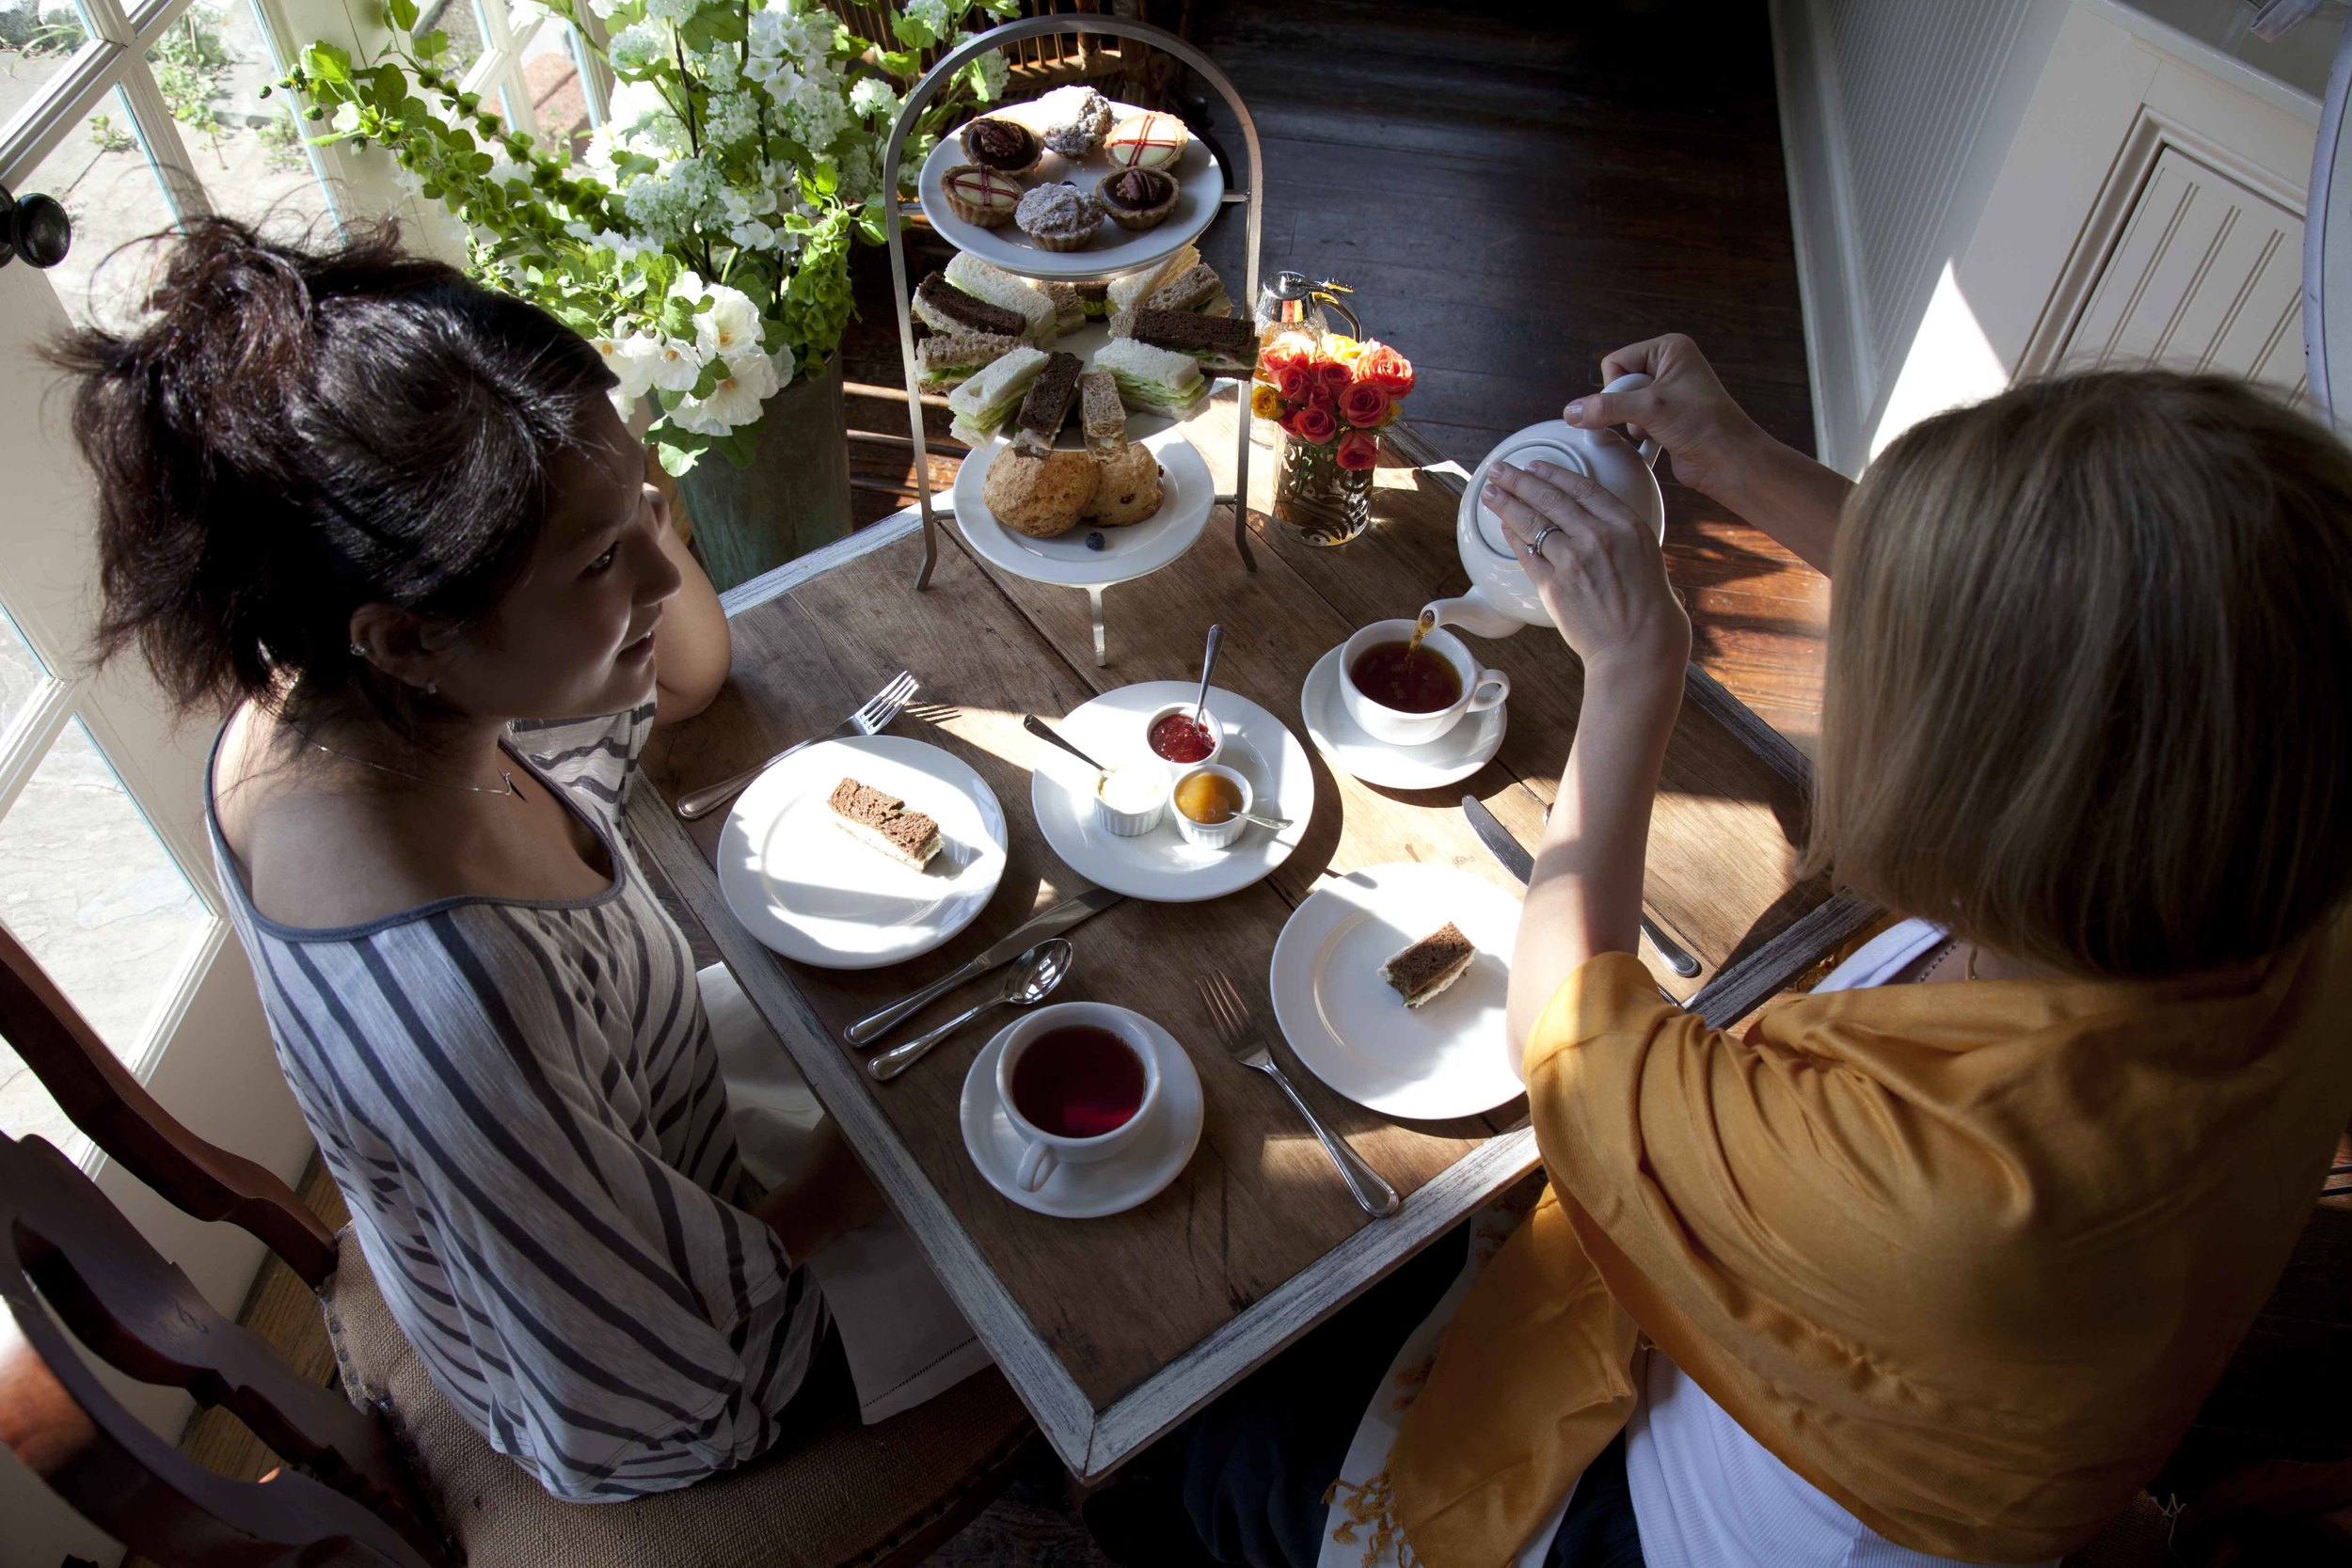 Our Signature Afternoon Tea: Freshly baked scones, clotted cream, artisan jam, an assortment of six finger sandwiches including roasted chicken salad, egg salad, and cucumber with Boursin. To end, you will be presented with a selection of desserts, topped off with a small pot of your favorite tea. Our Signature Afternoon Tea: $26/person. Restaurant Week offer ends November 18th. Coupon valid until December 24th, perfect for your holiday shopping desires!